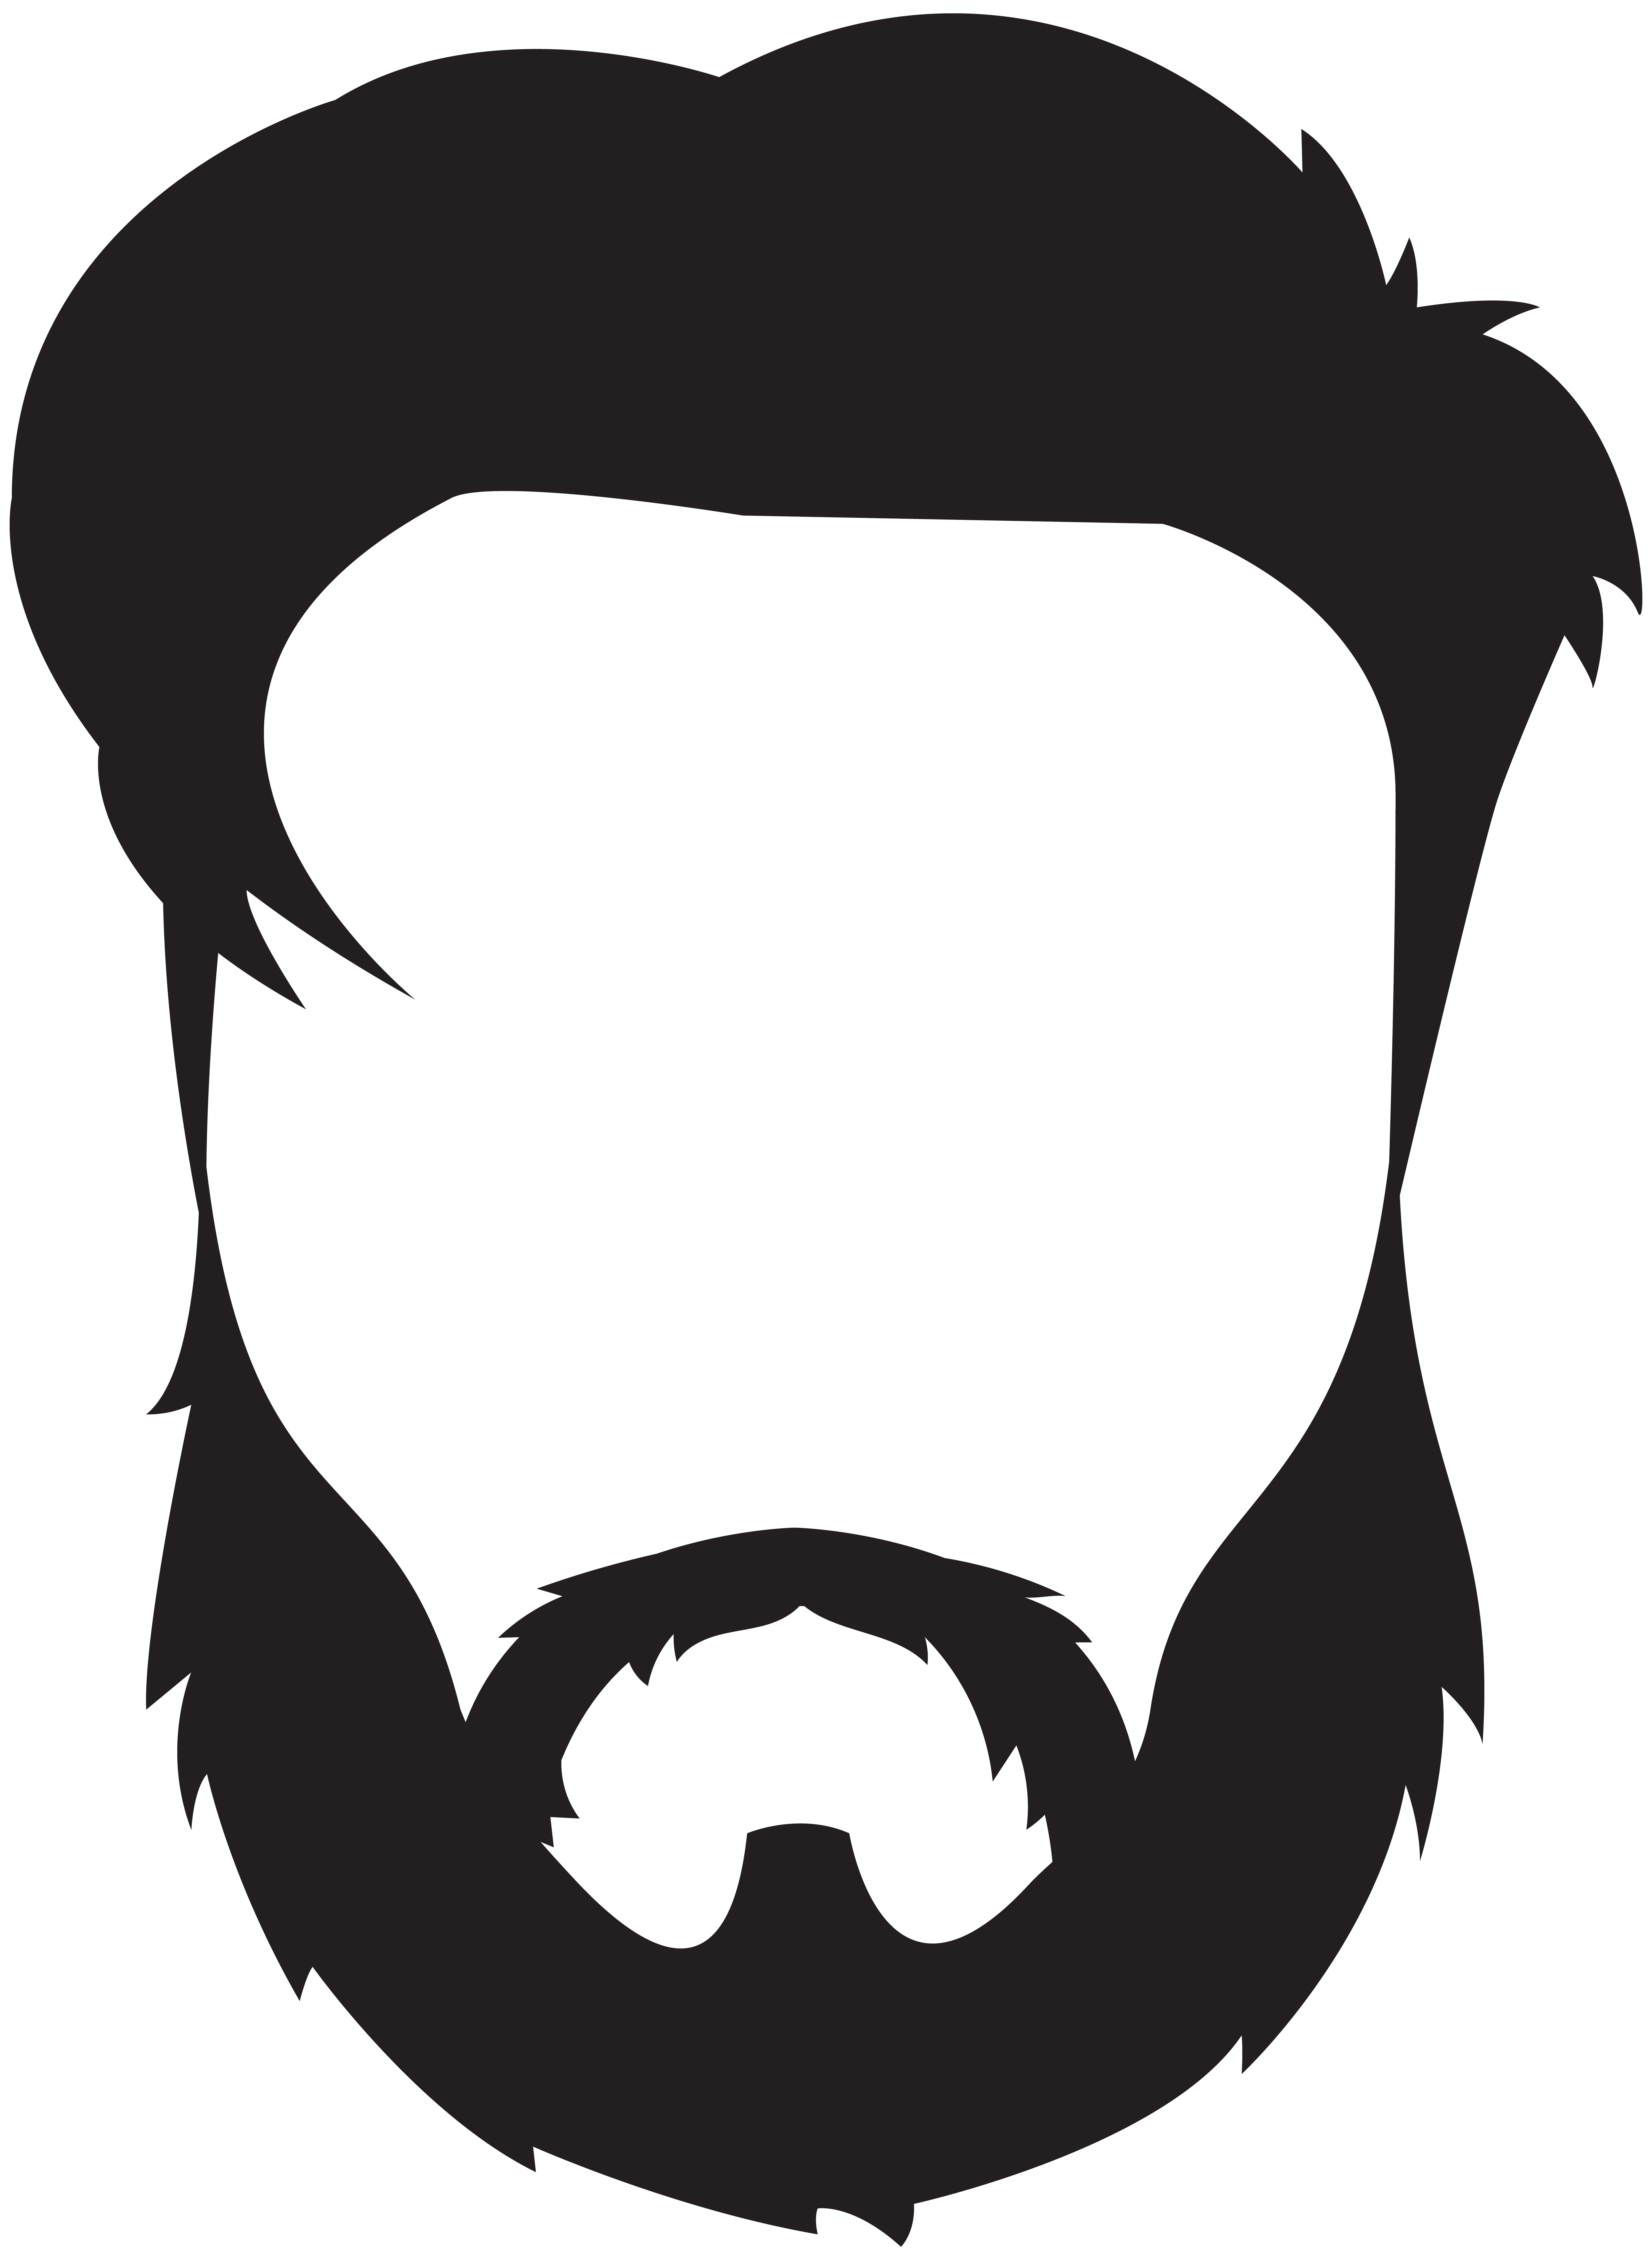 Man With Beard Png - Man Hair Beard Mustache PNG Clip Art Image | Gallery Yopriceville ...